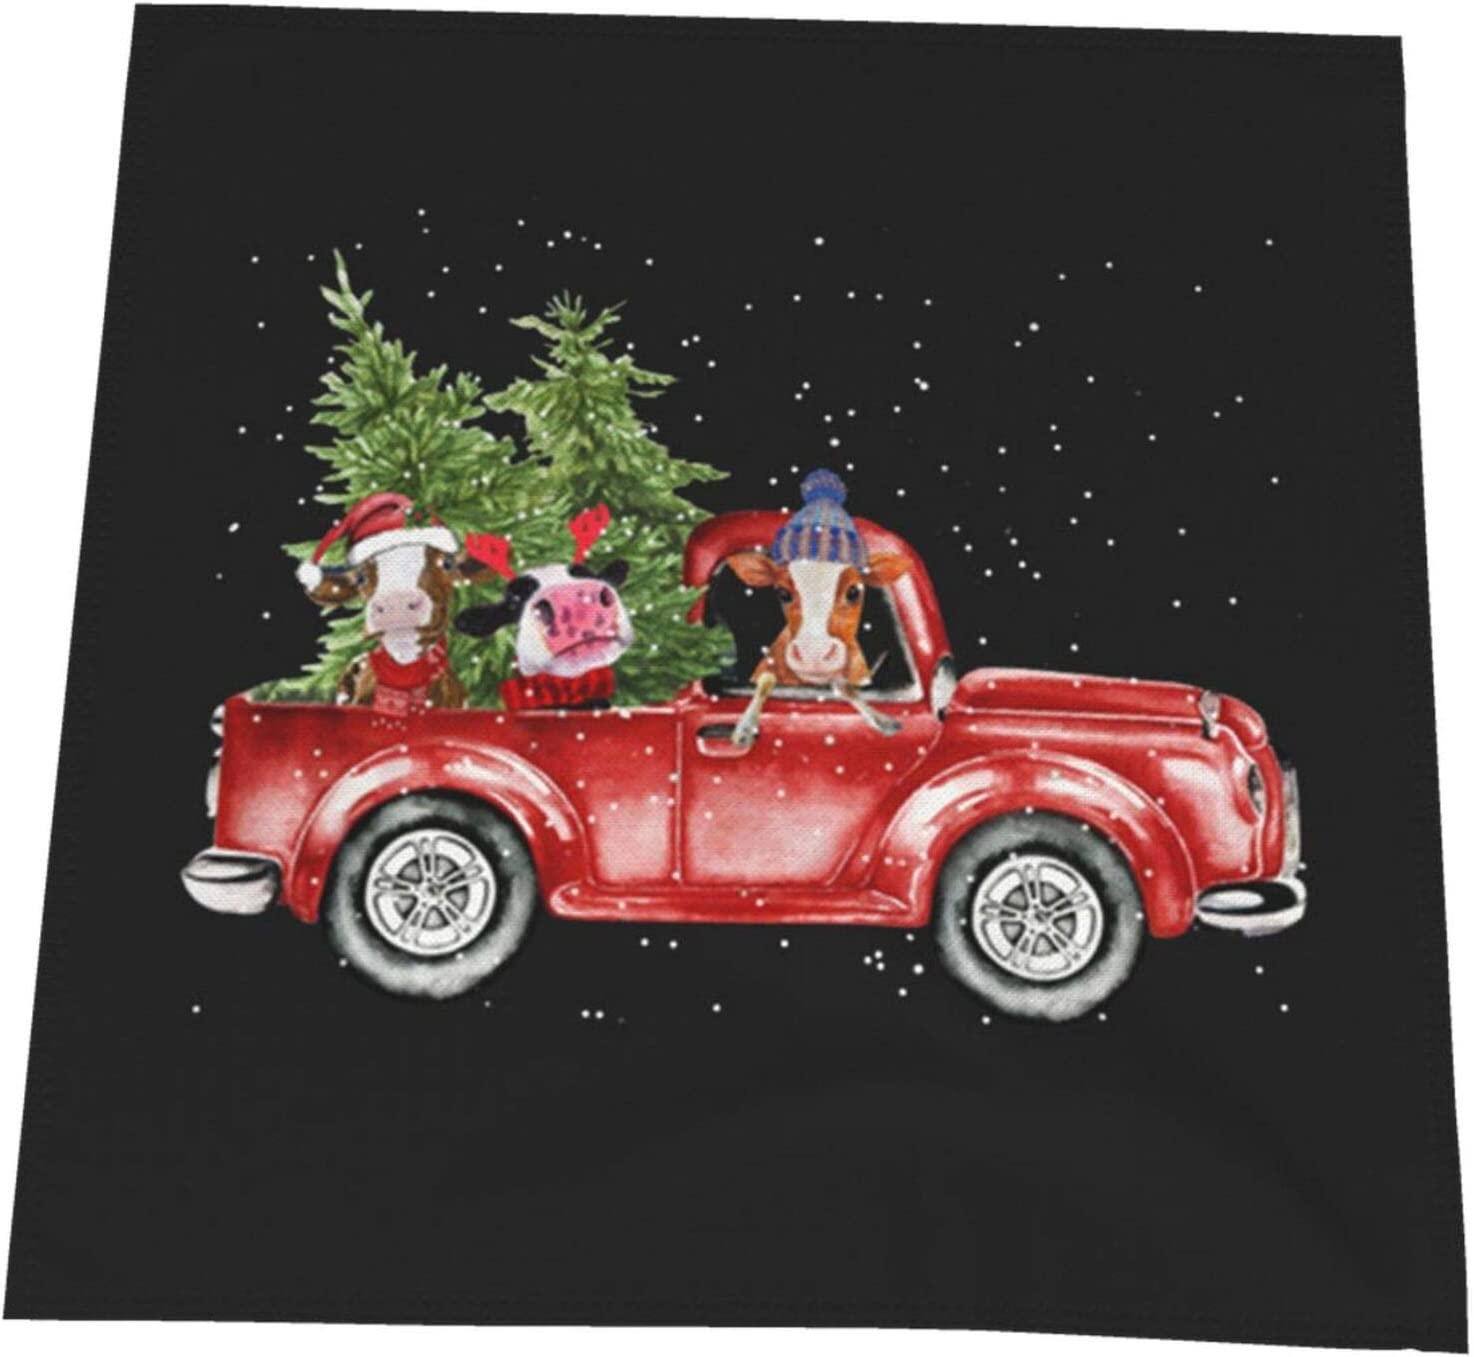 MQBeauty Cow Red Car Happy Christmas Napkin Cloth 20 x 20 in Soft Polyester Dinner Napkin for Home Picnic Party Holiday Decoration Table Cover Celebration Tablecloths 6 PCS